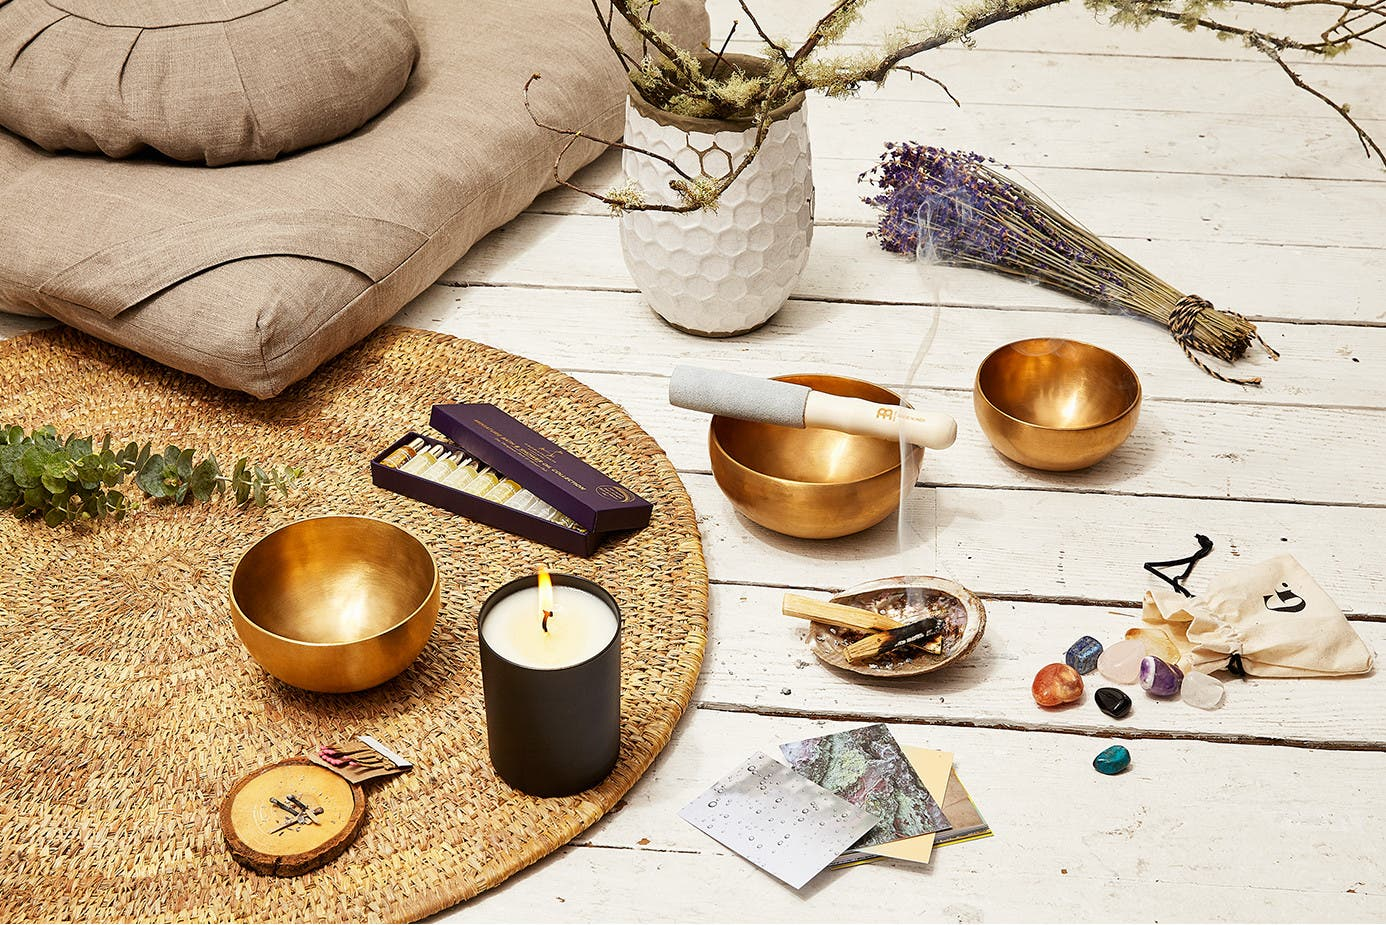 goop incense, oils, and candles with other products